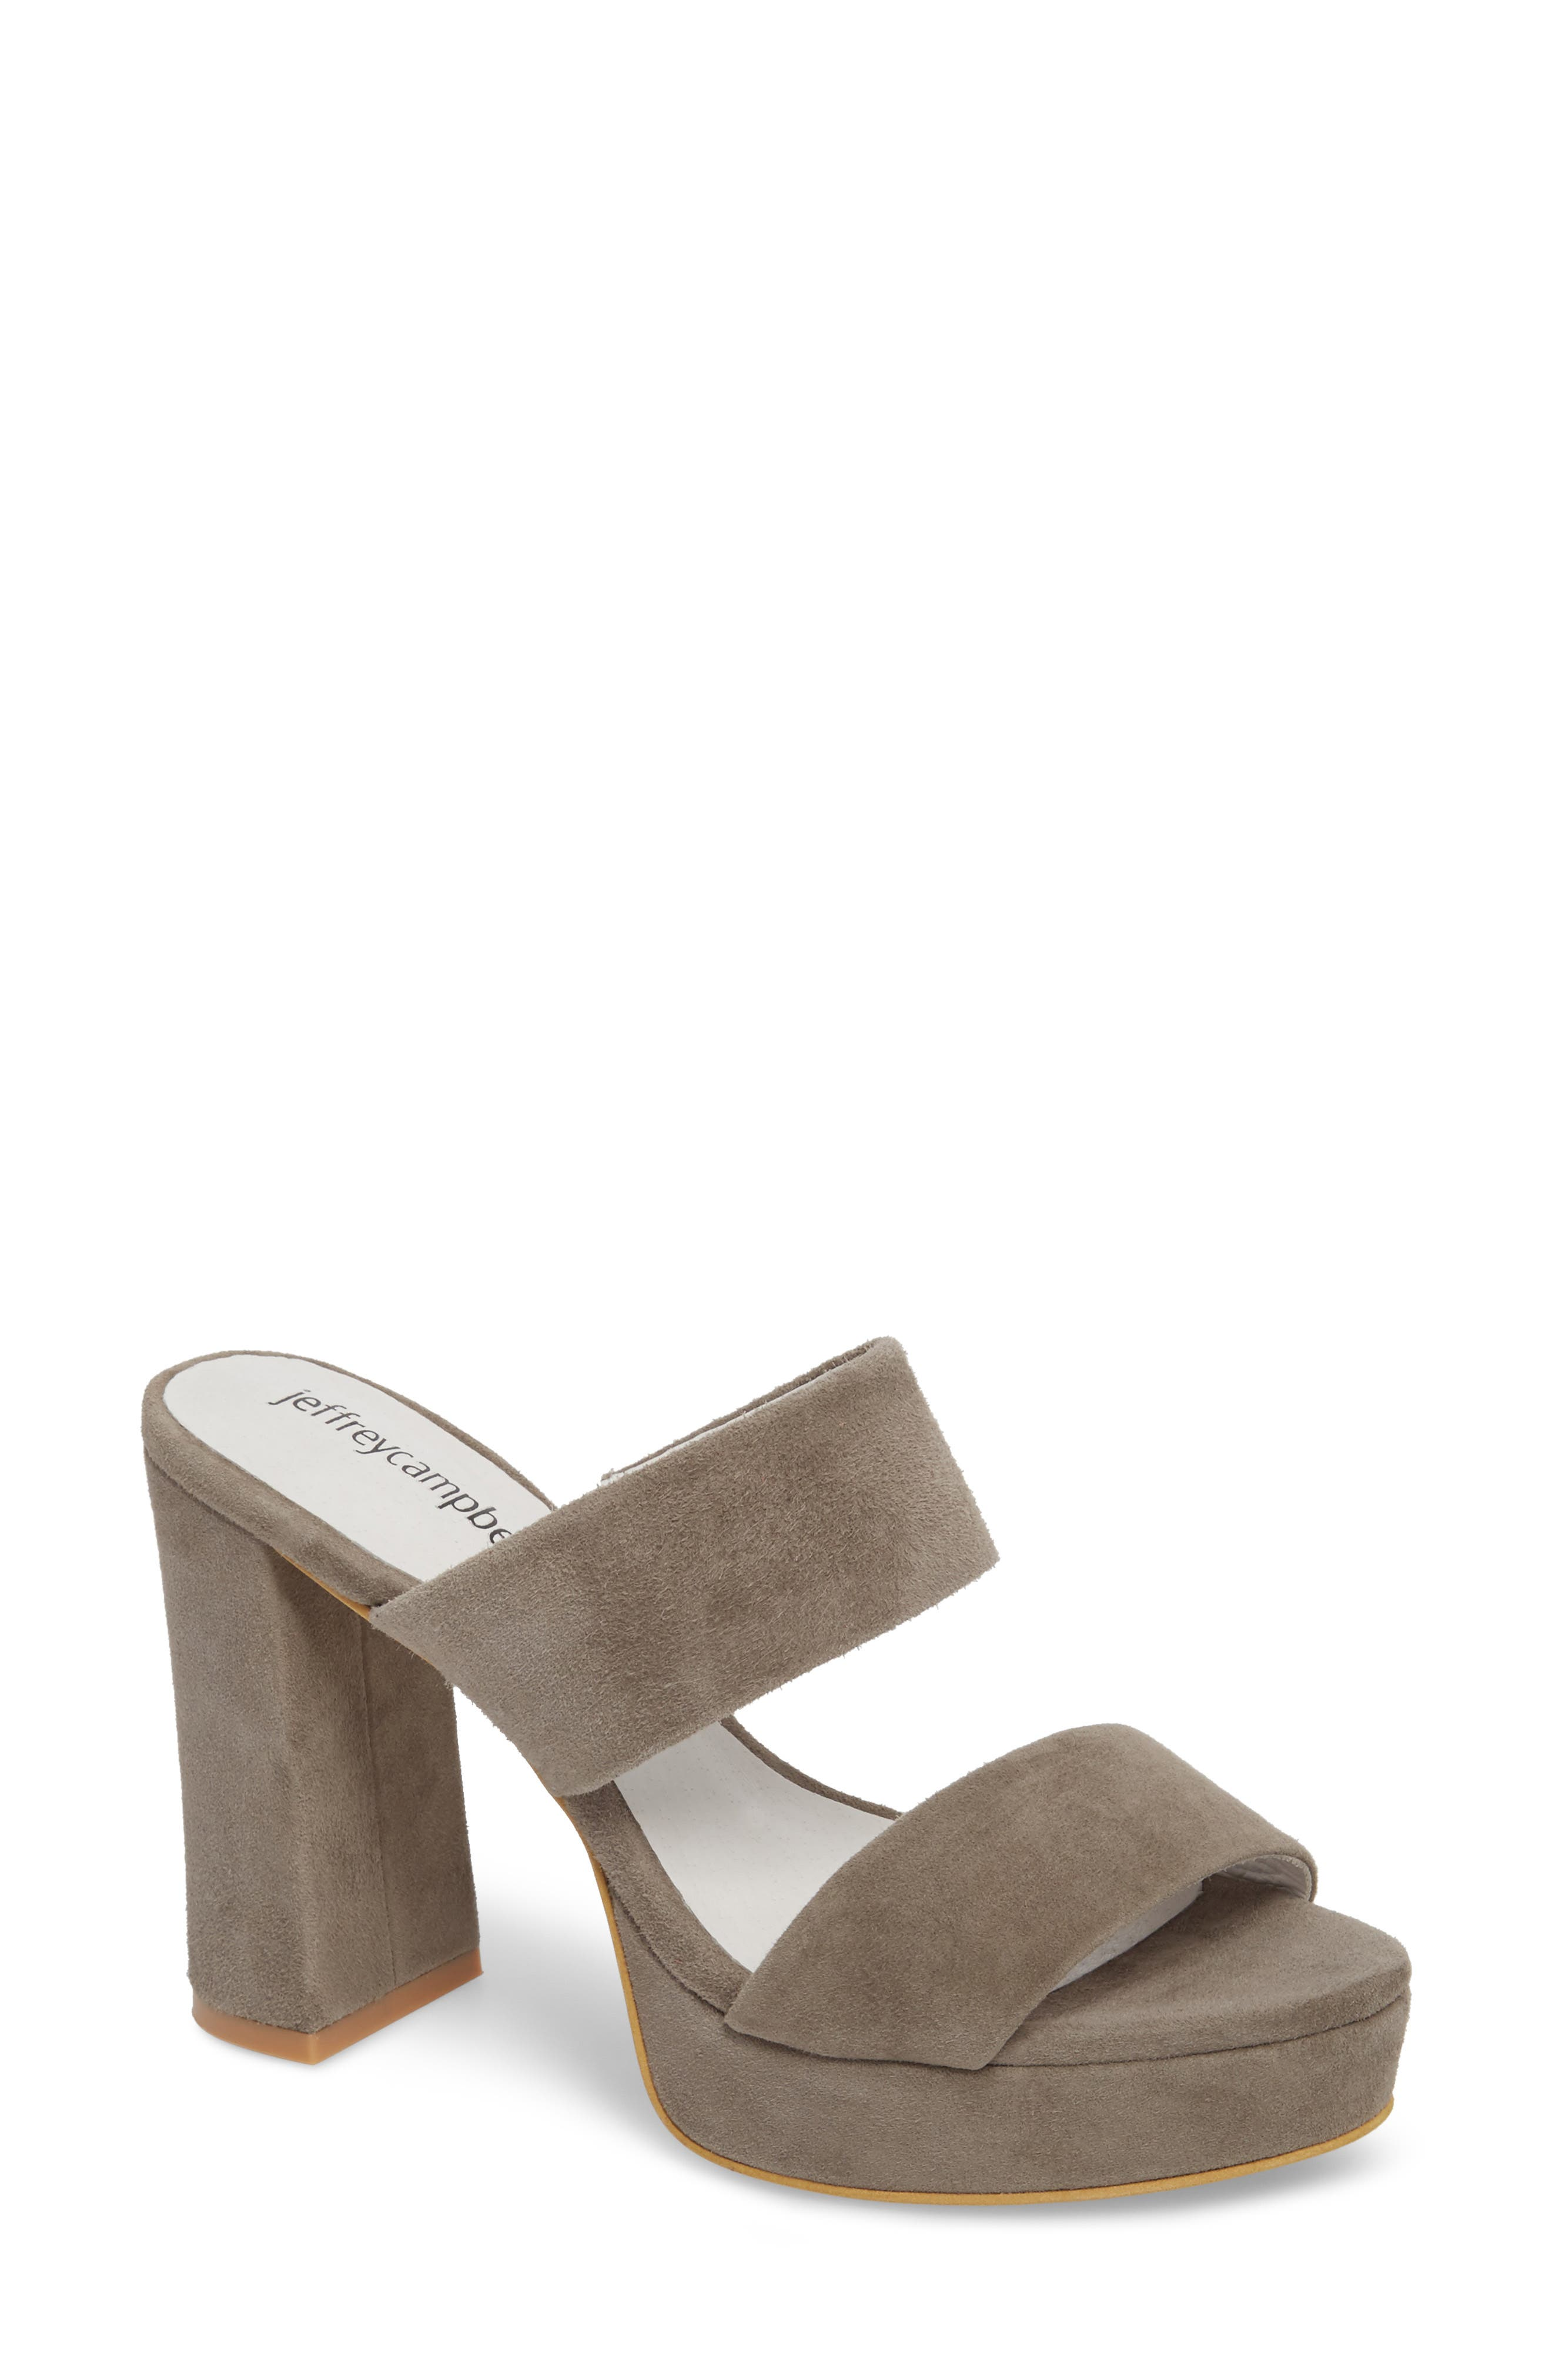 Adriana Double Band Platform Sandal,                             Main thumbnail 1, color,                             Grey Suede